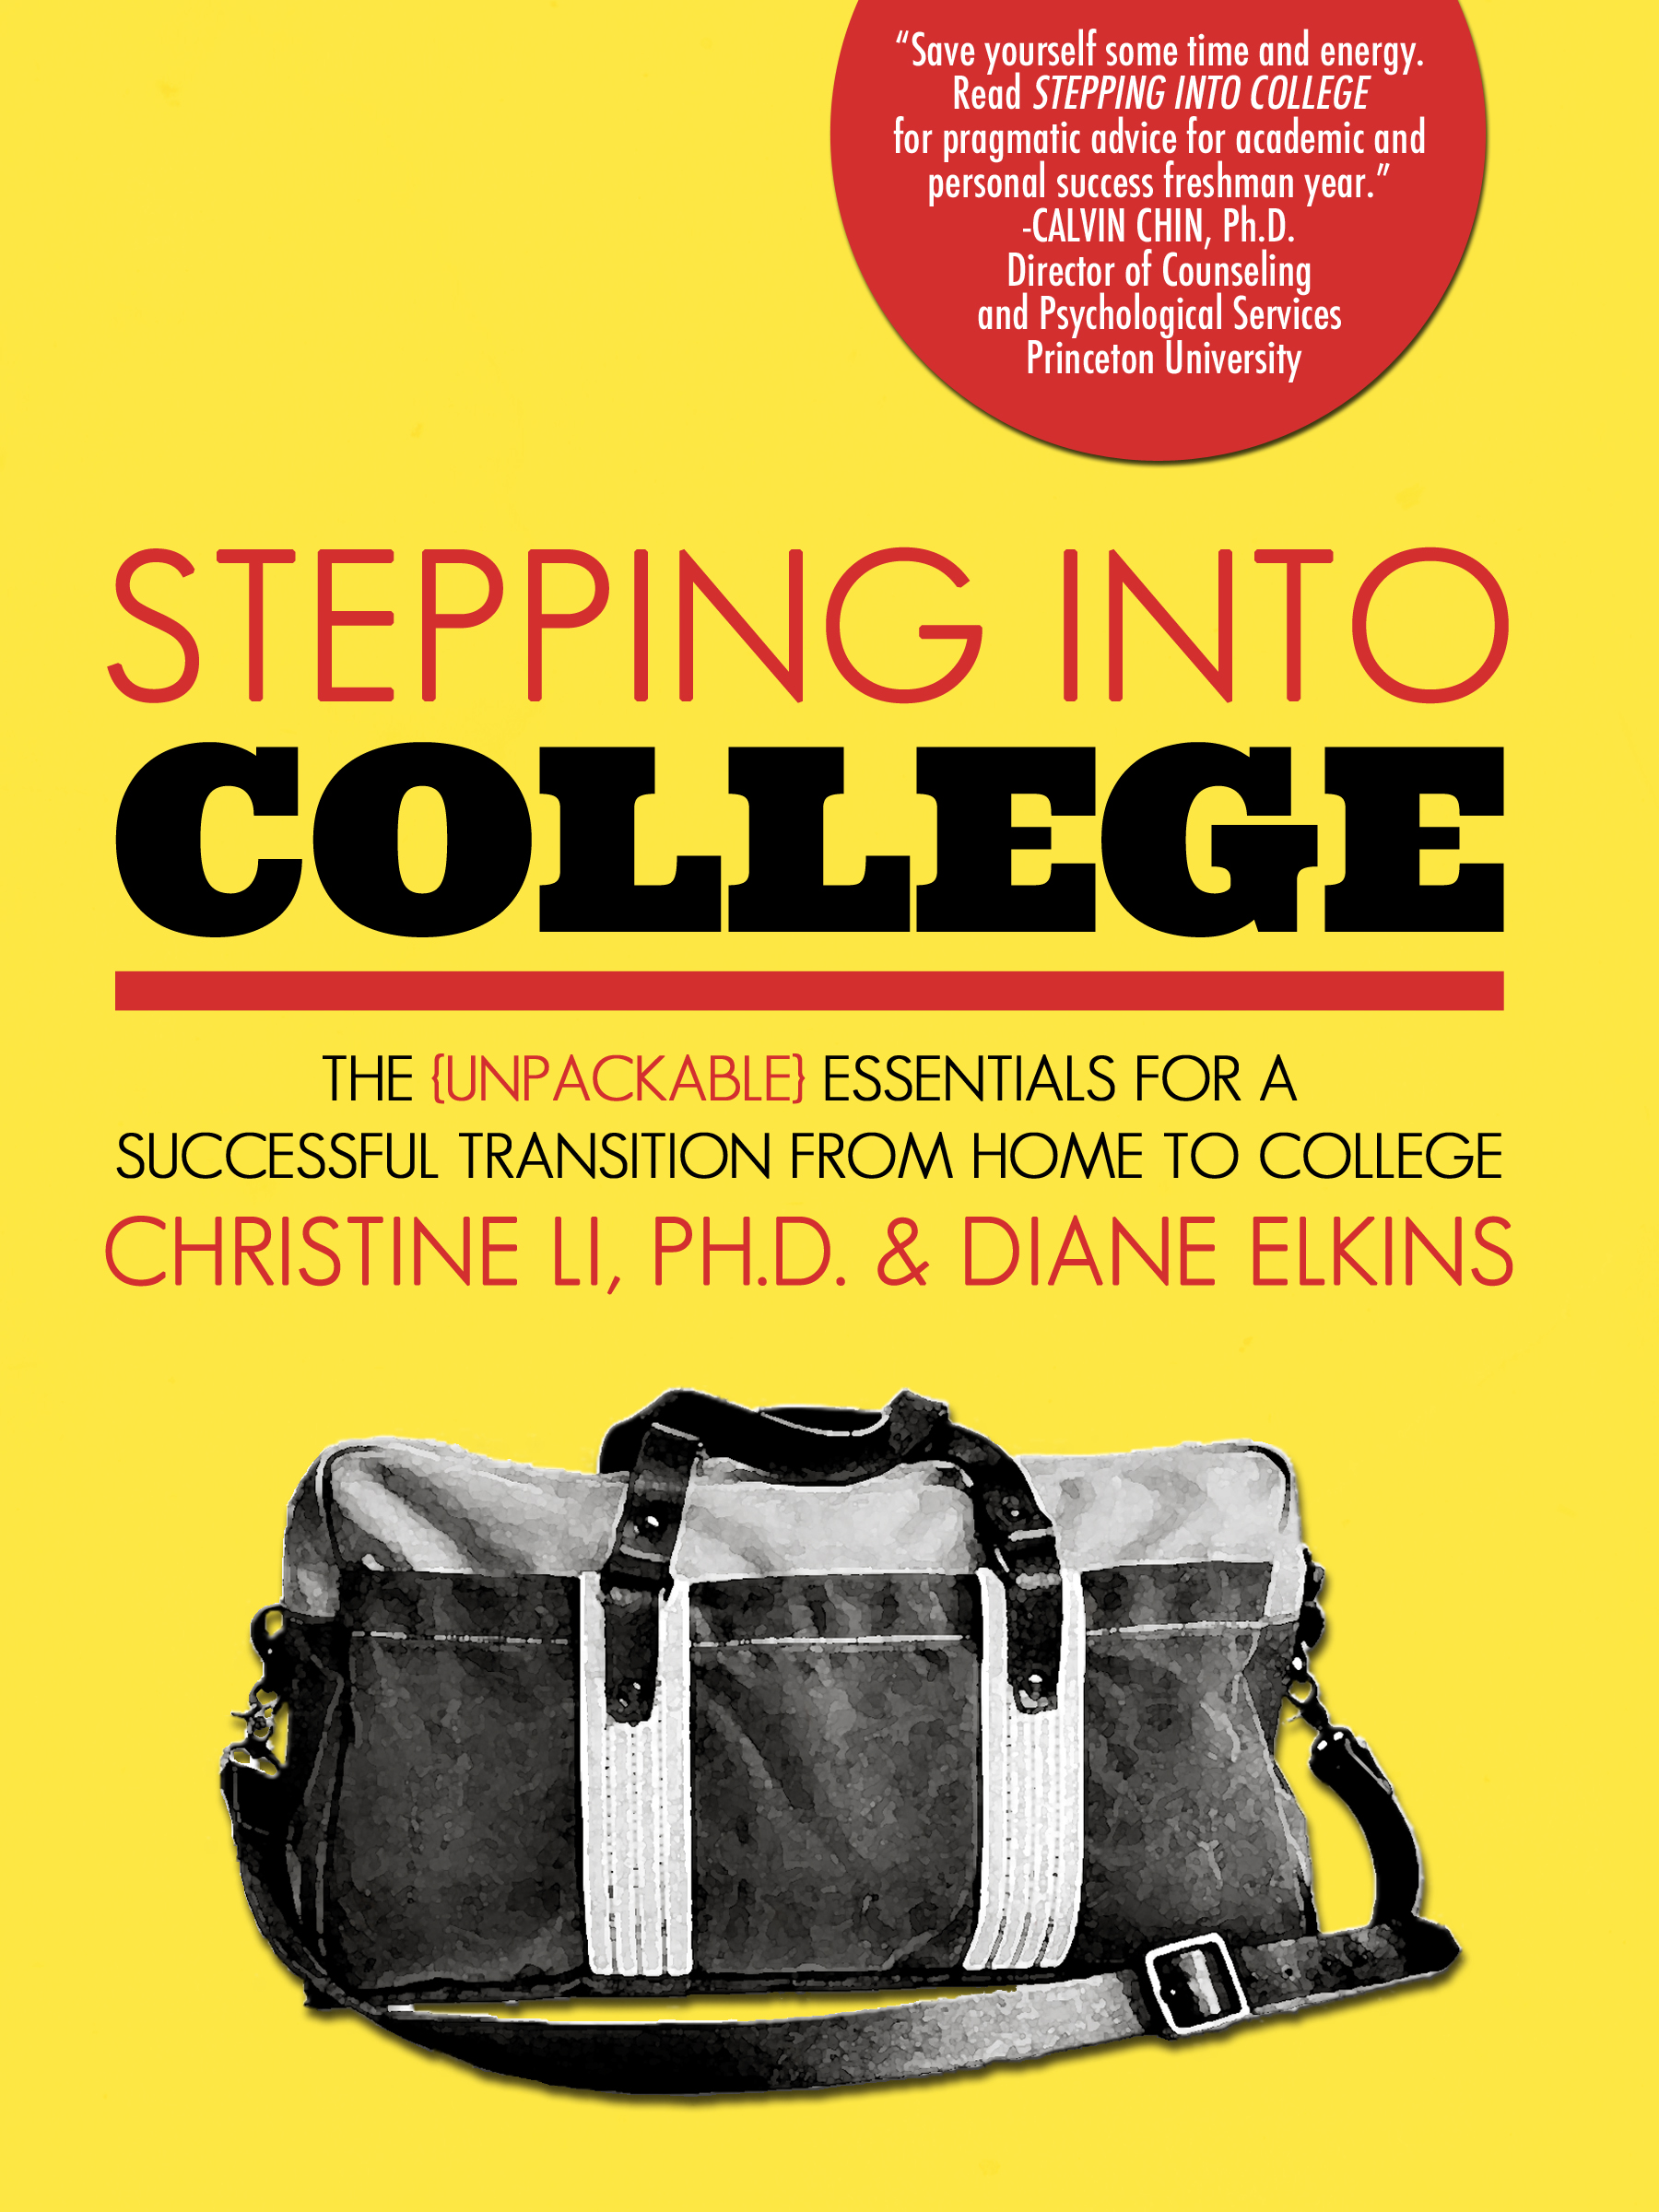 SteppingIntoCollegeCover